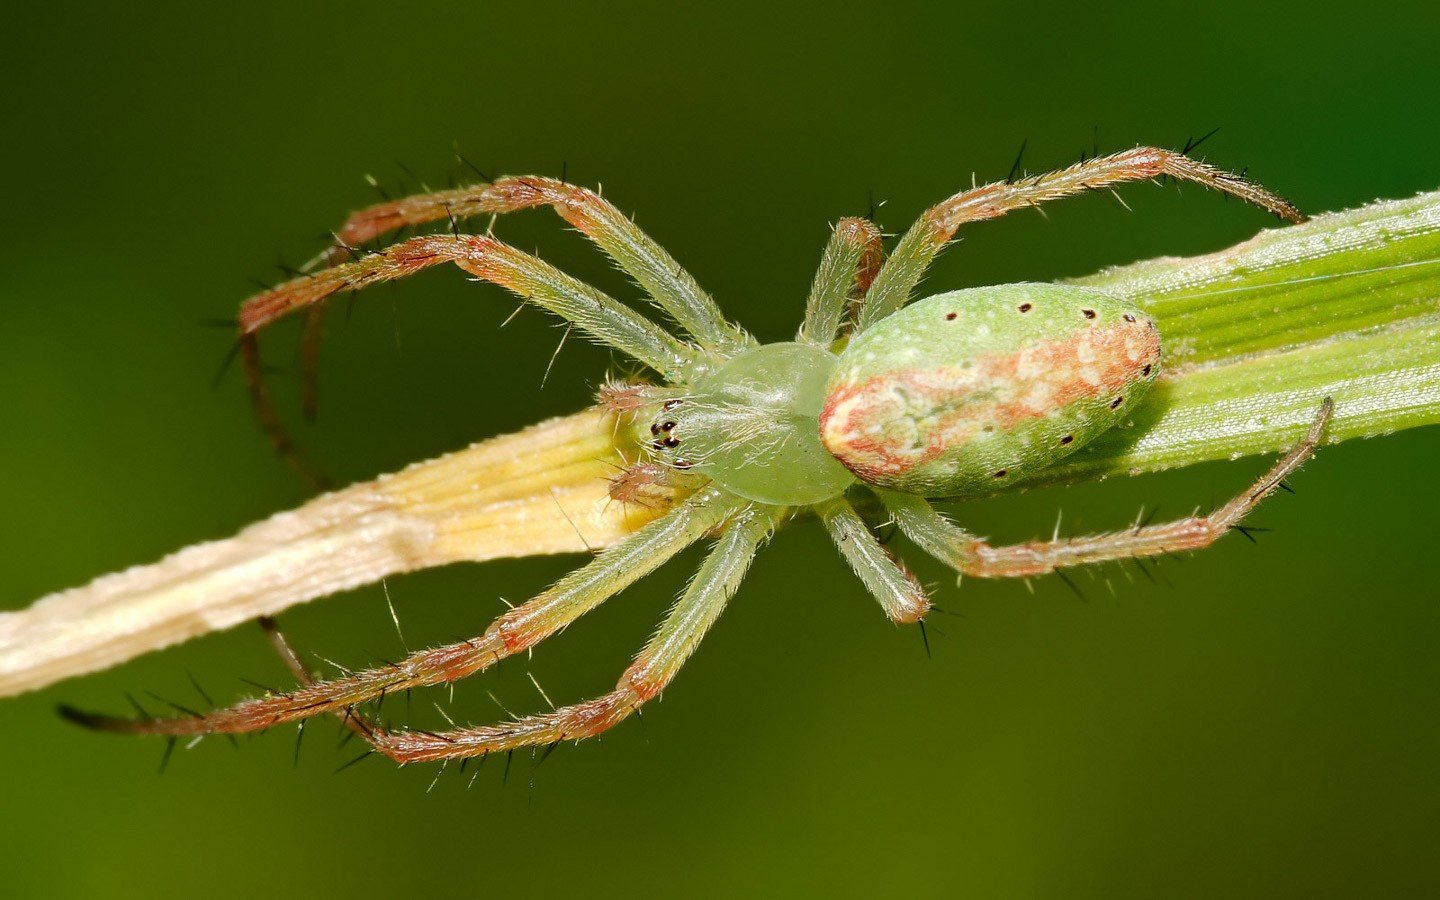 High resolution Spider hd 1440x900 background ID:22425 for PC